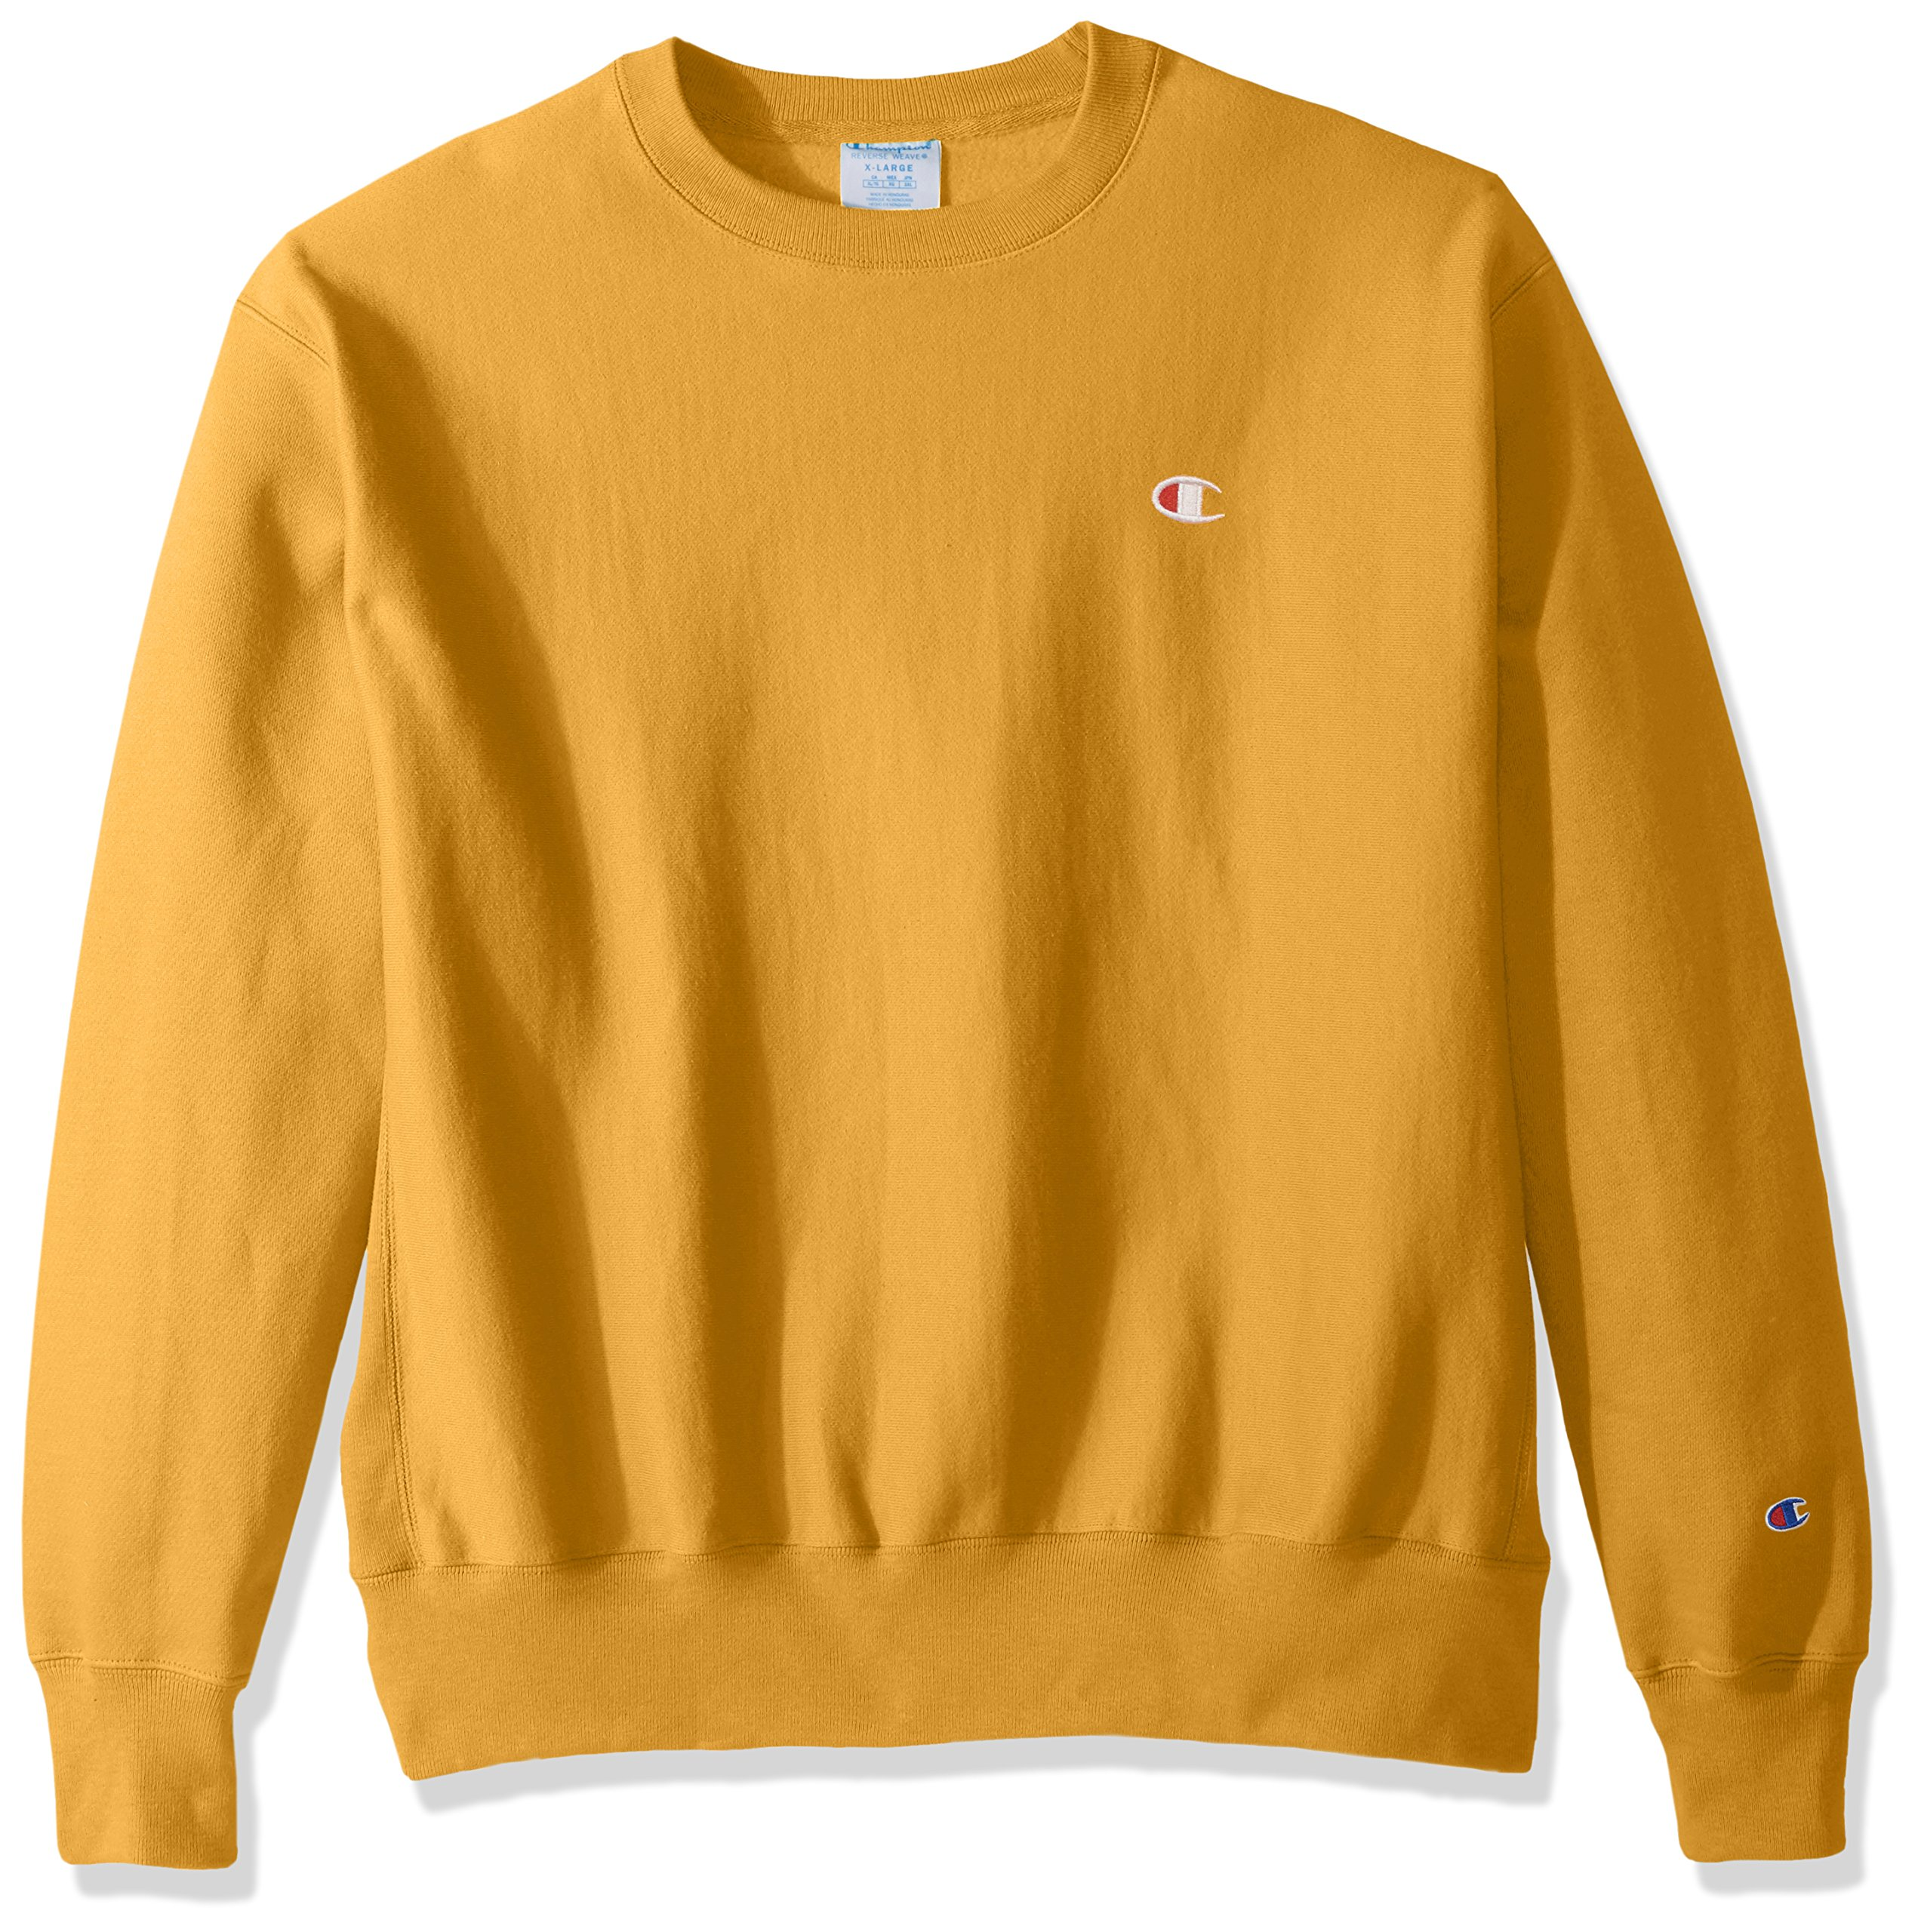 Champion LIFE Men's Reverse Weave Sweatshirt,C Gold/Left Chest C Logo,Small by Champion LIFE